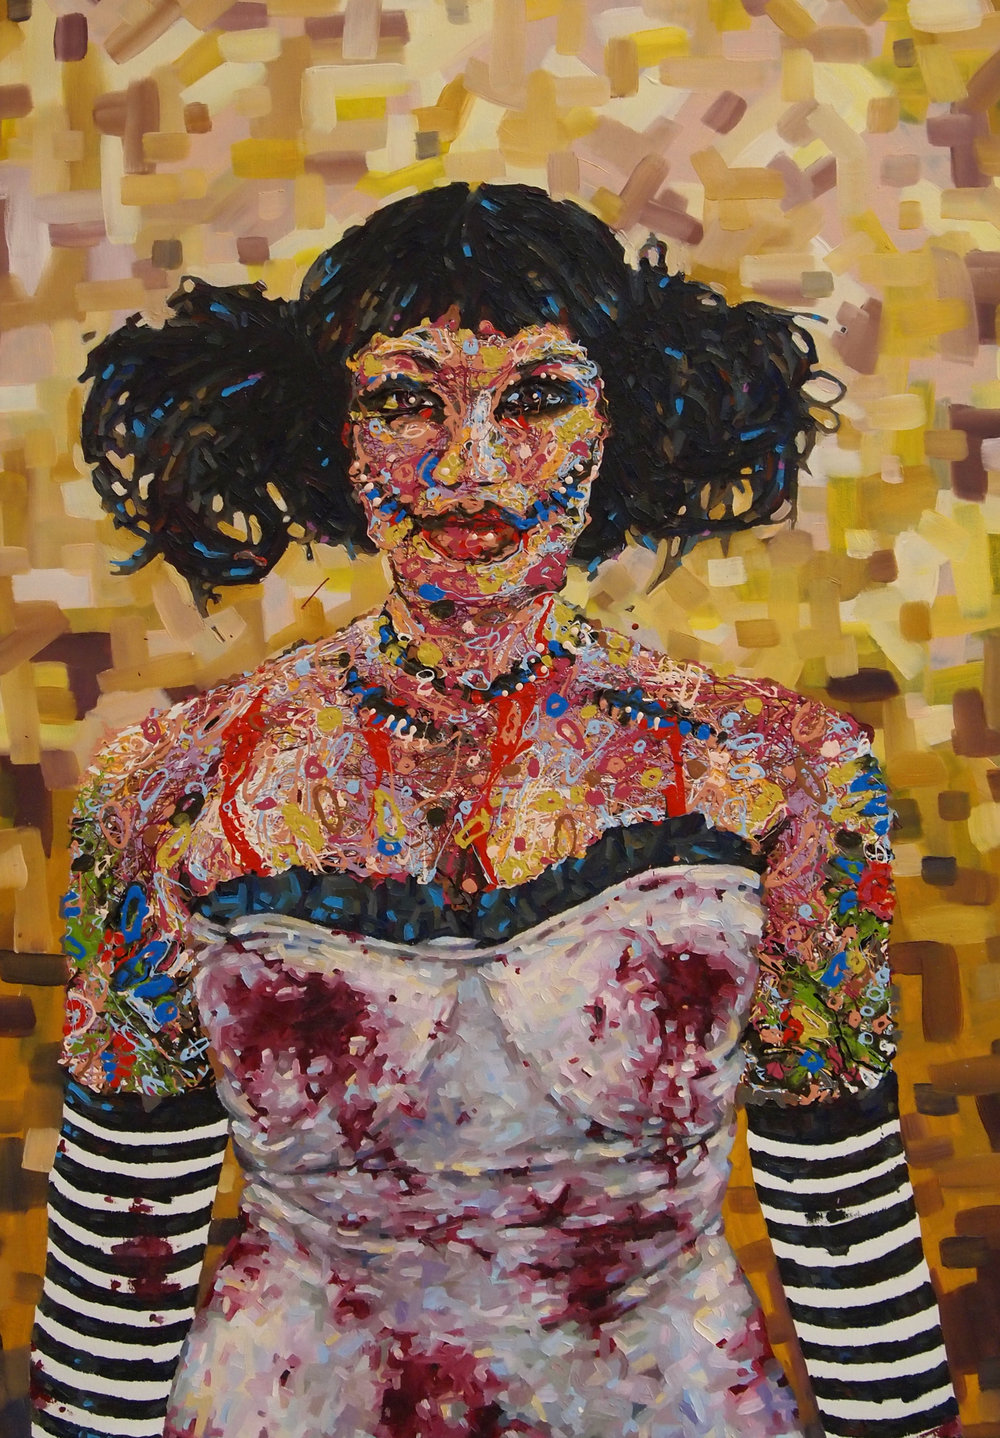 2012 zombie girl oil and acrylic on canvas 32x50  SOLD.jpg